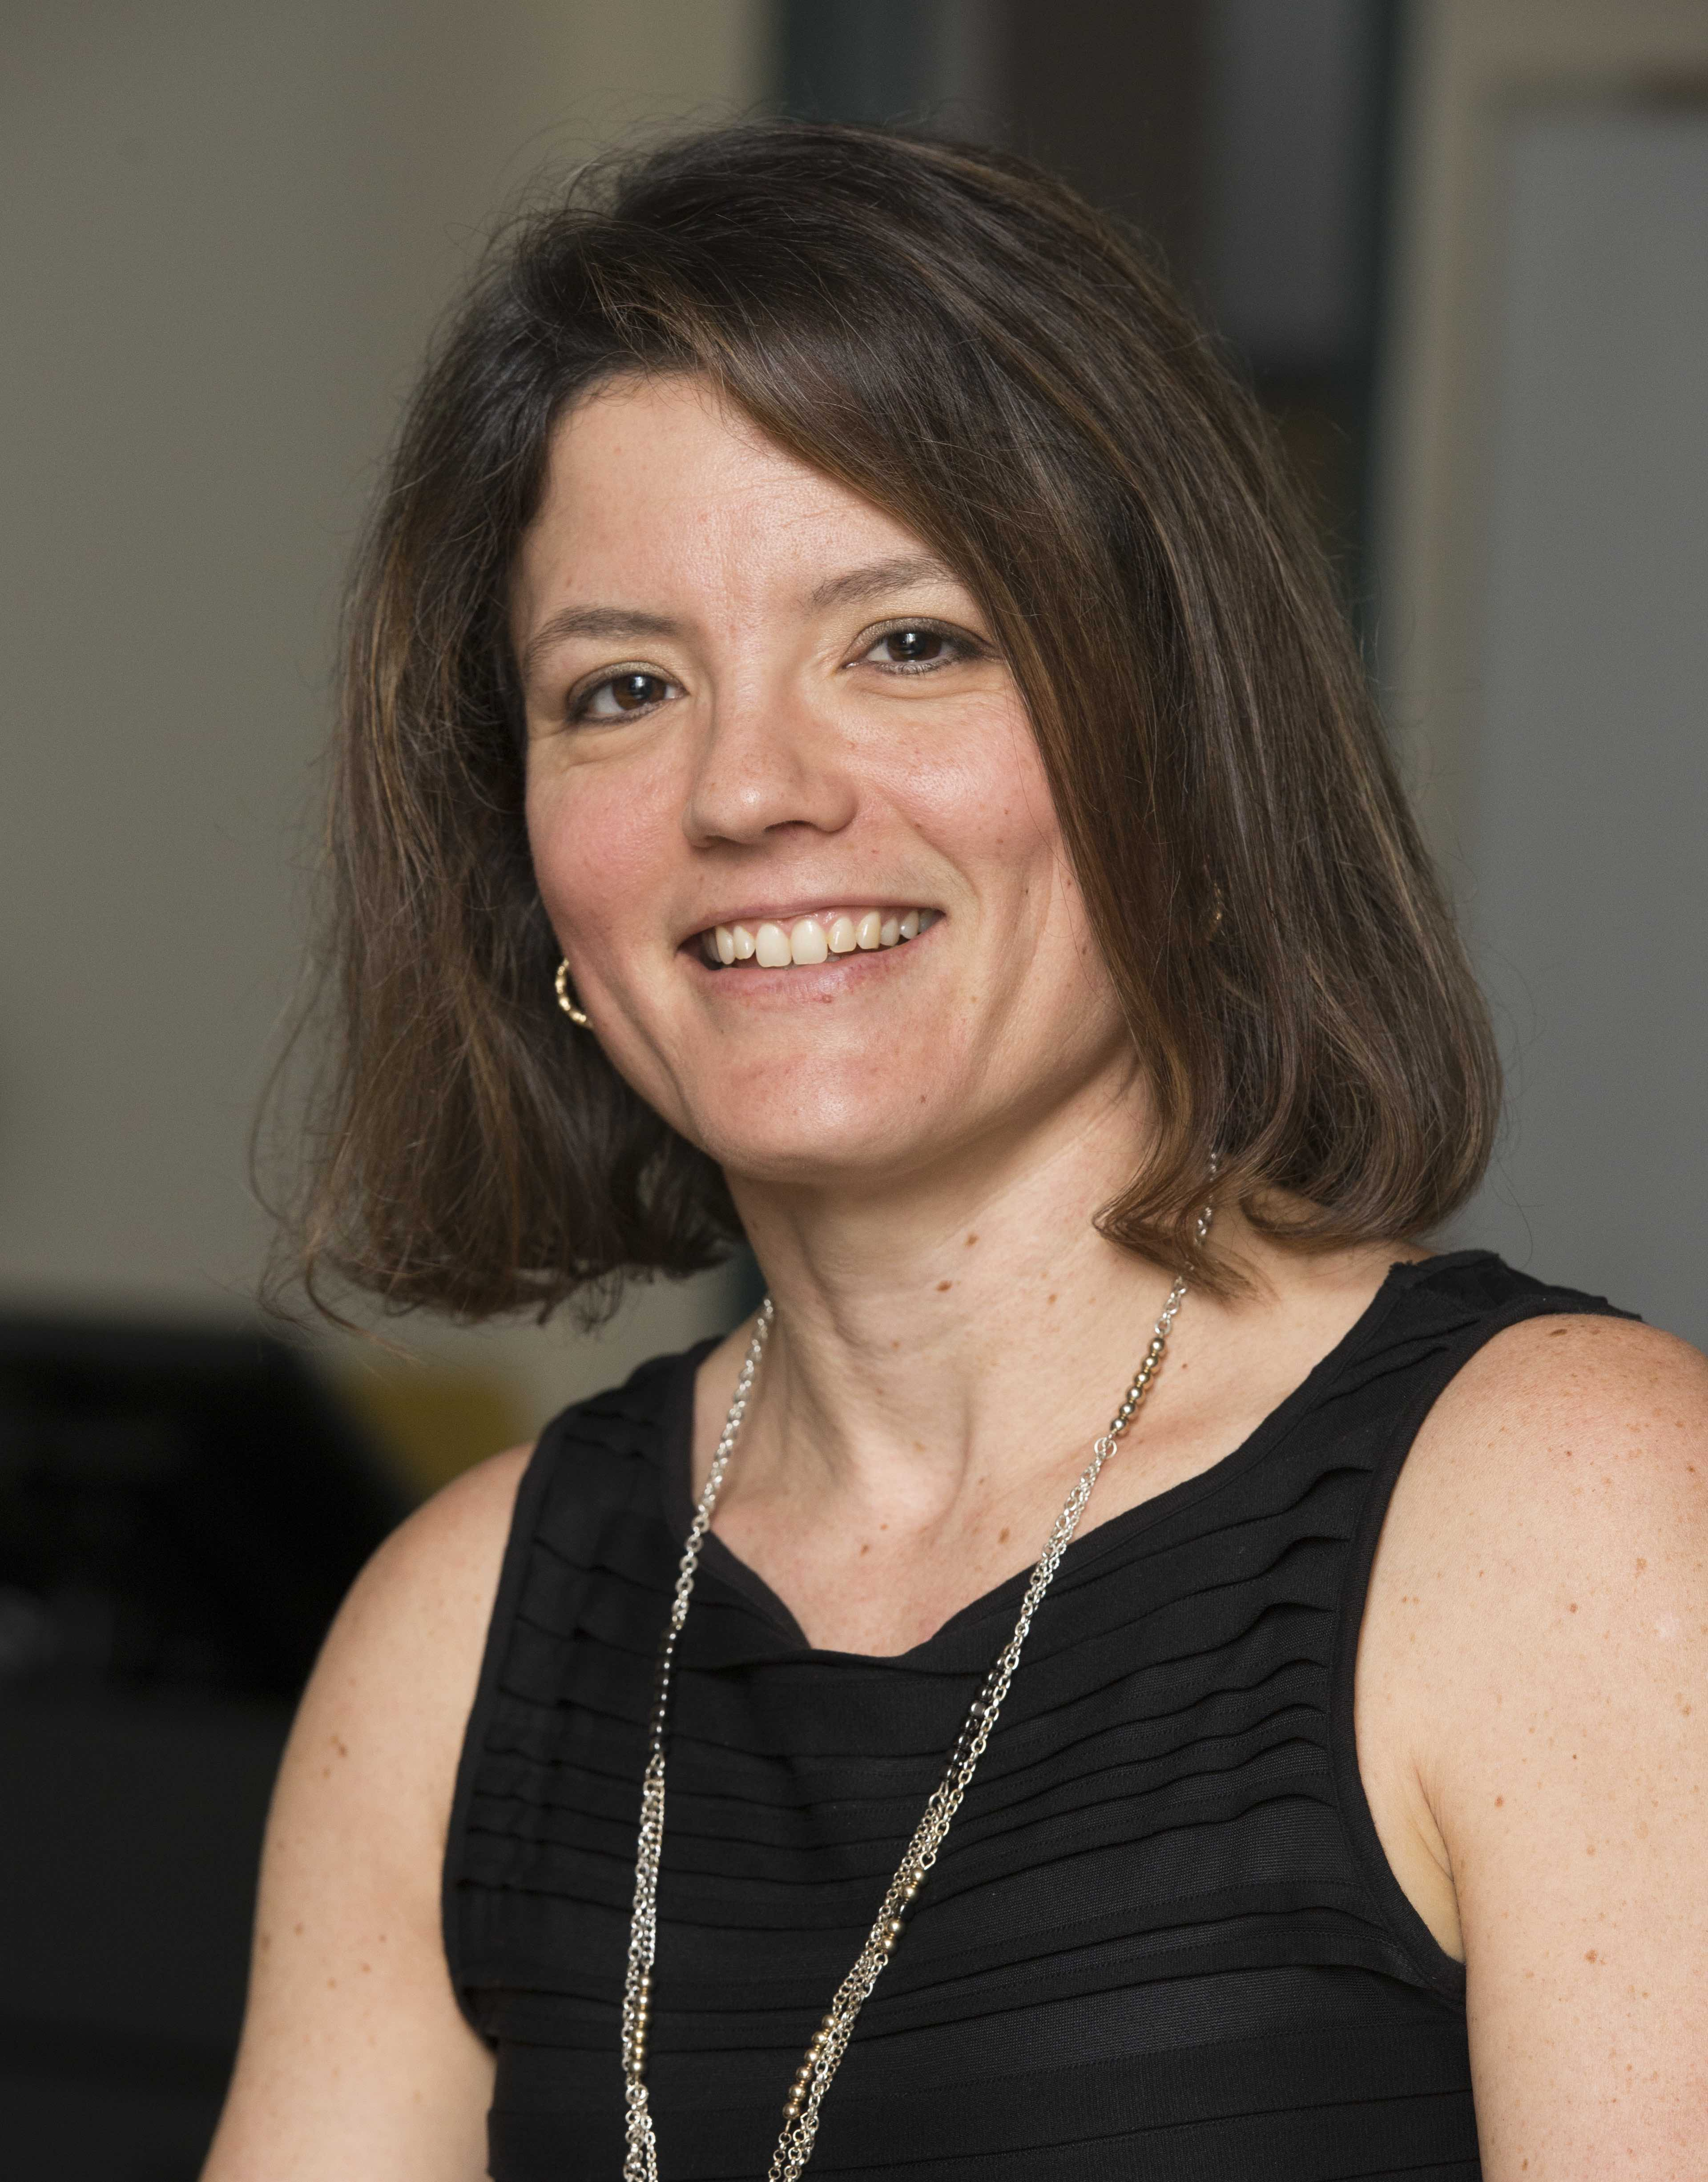 Christina Scherrer, professor of industrial engineering, Southern Polytechnic College of Engineering and Engineering Technology